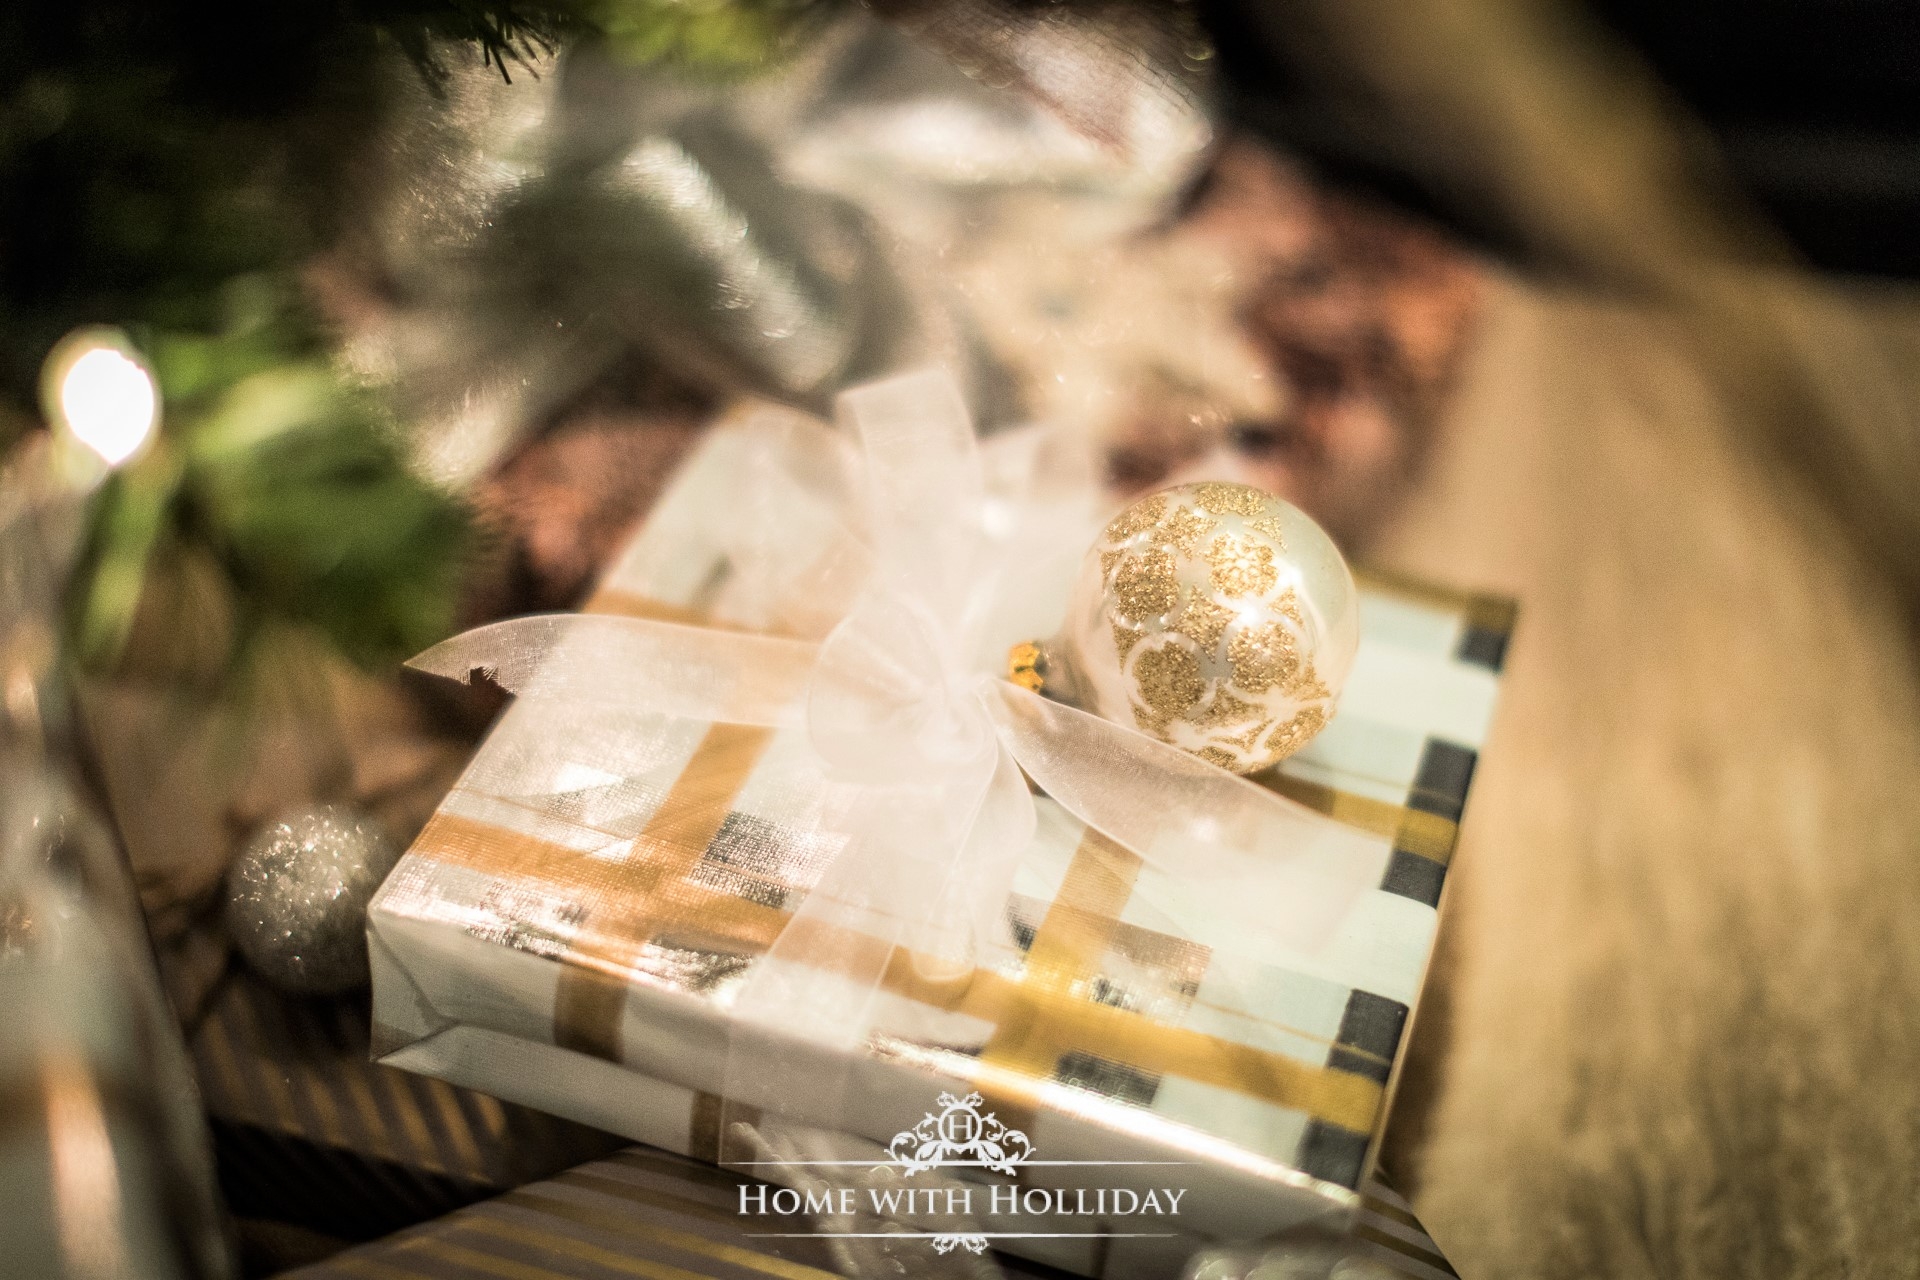 Holliday's Holiday Gift Guide - My Favorites! - Home with Holliday